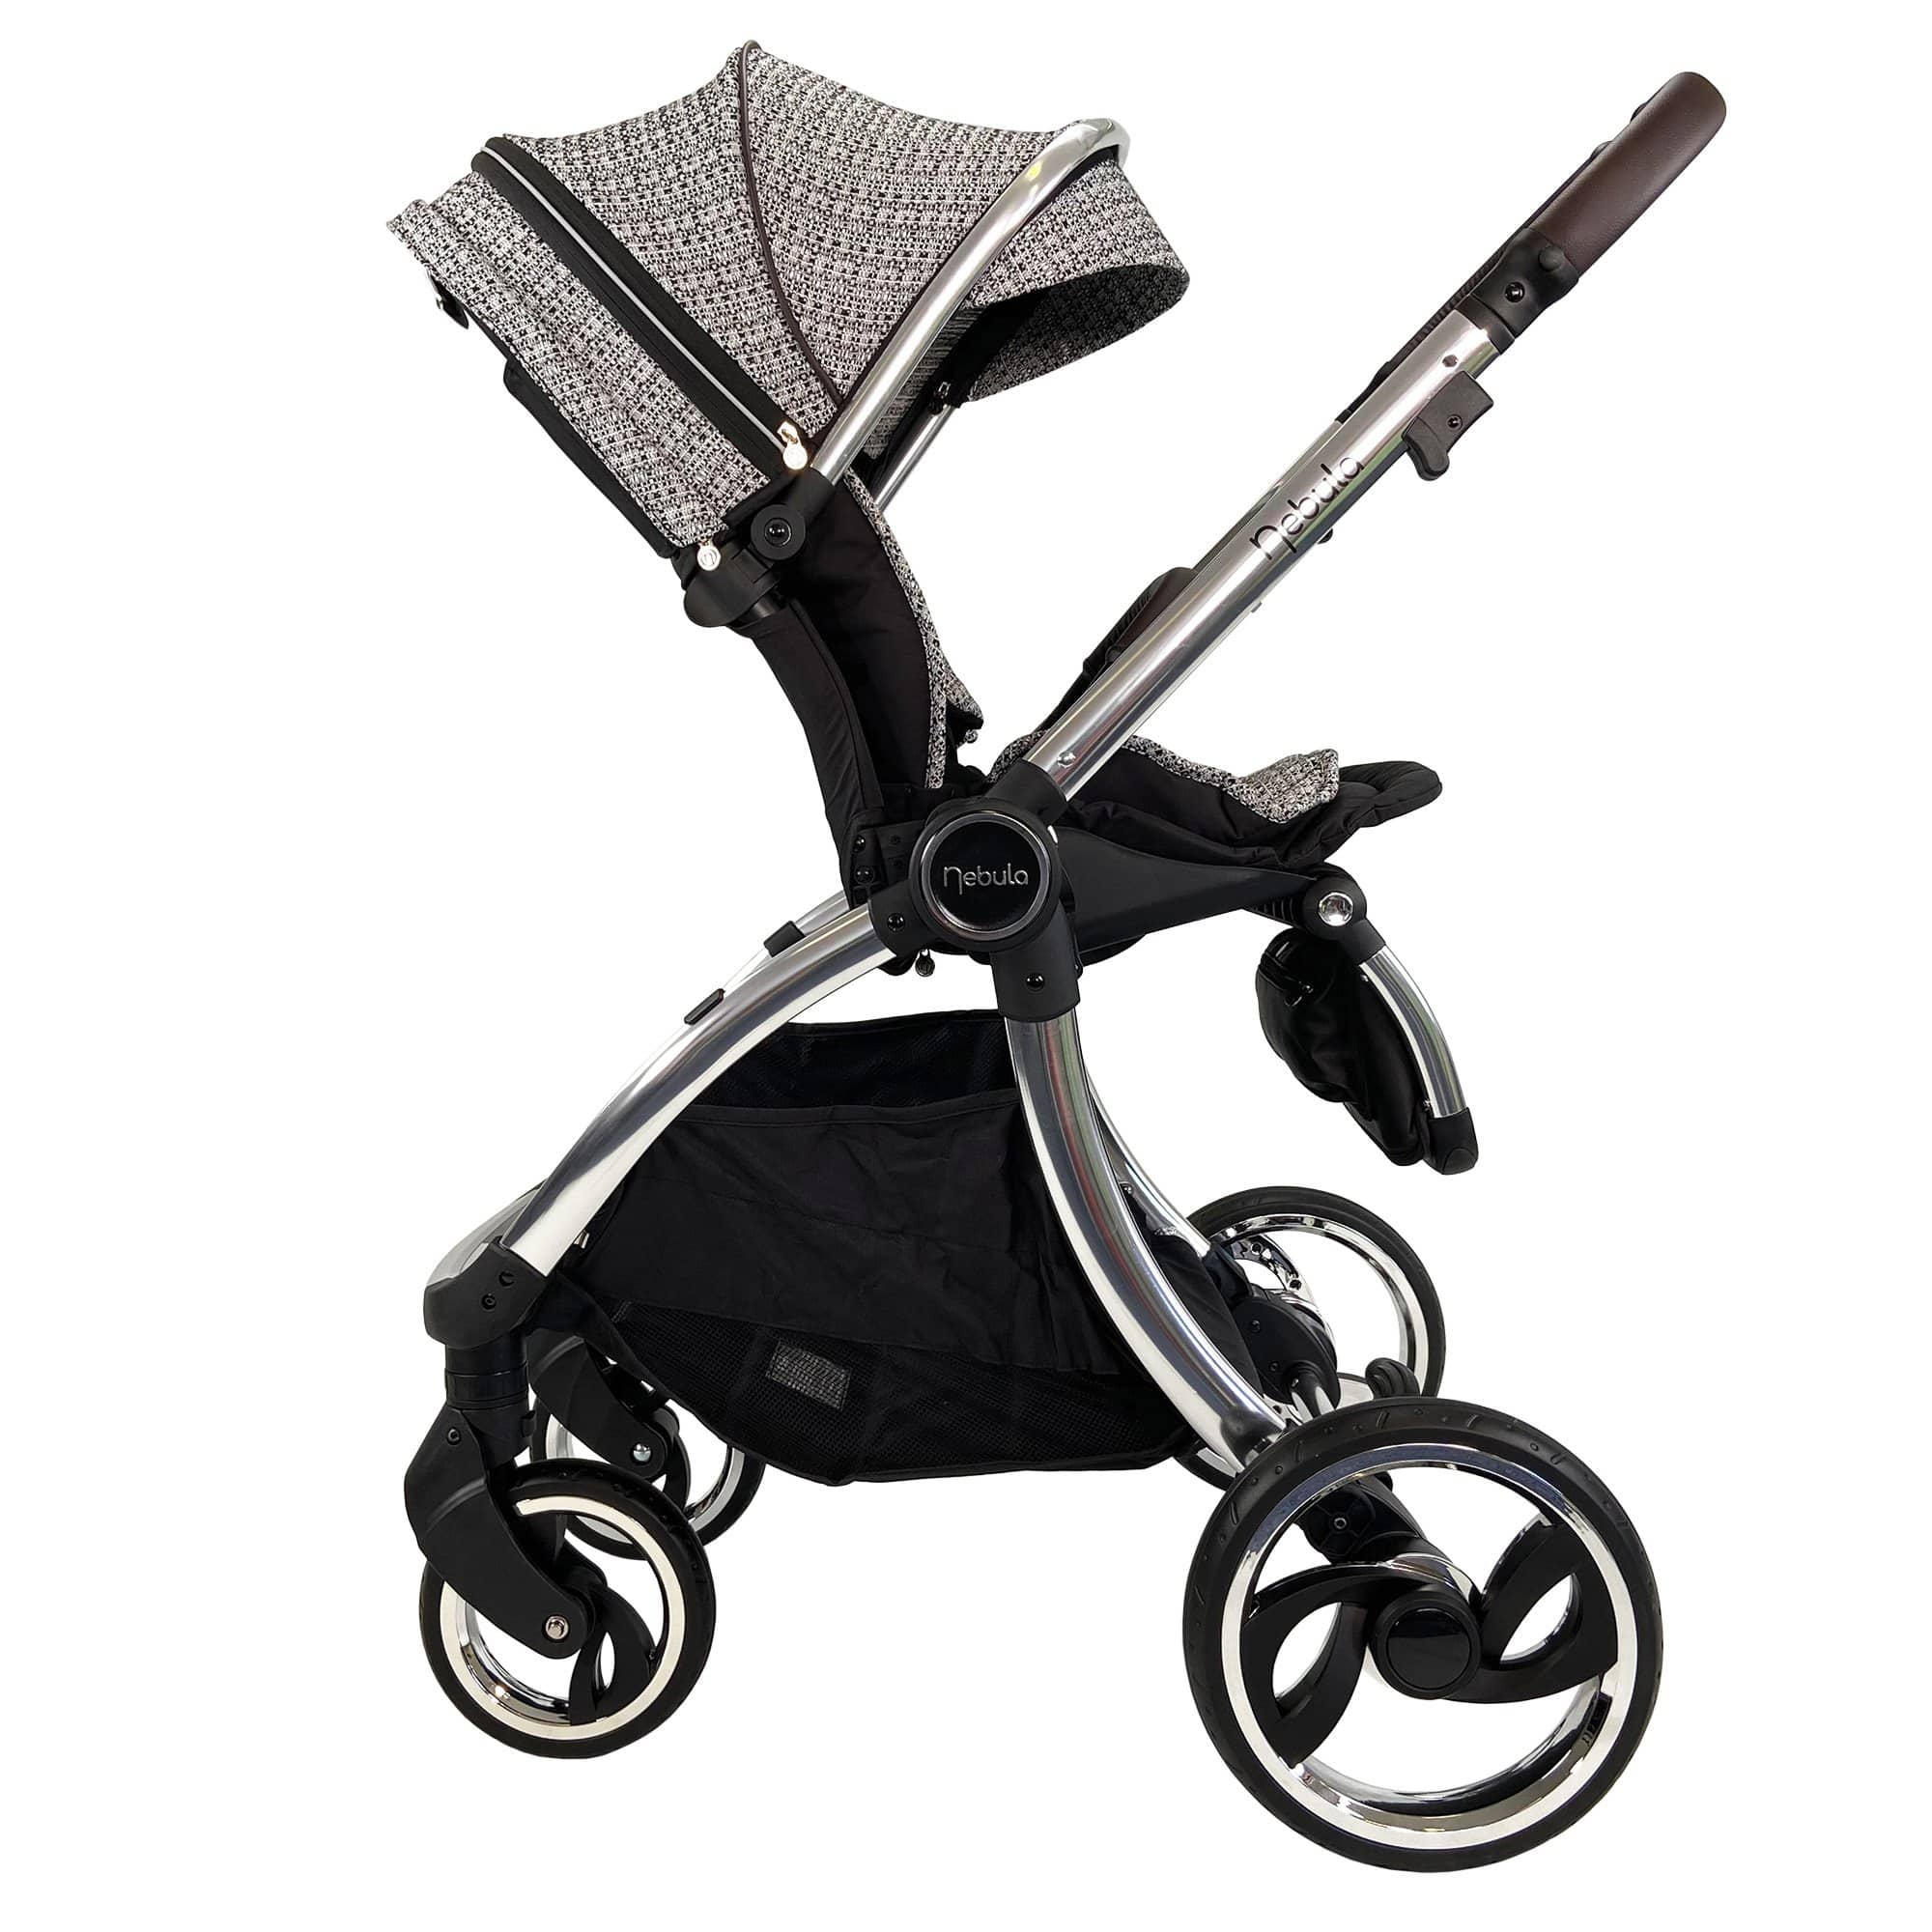 Side view of the Venture Nebula Stroller in Signature Edition fabrics